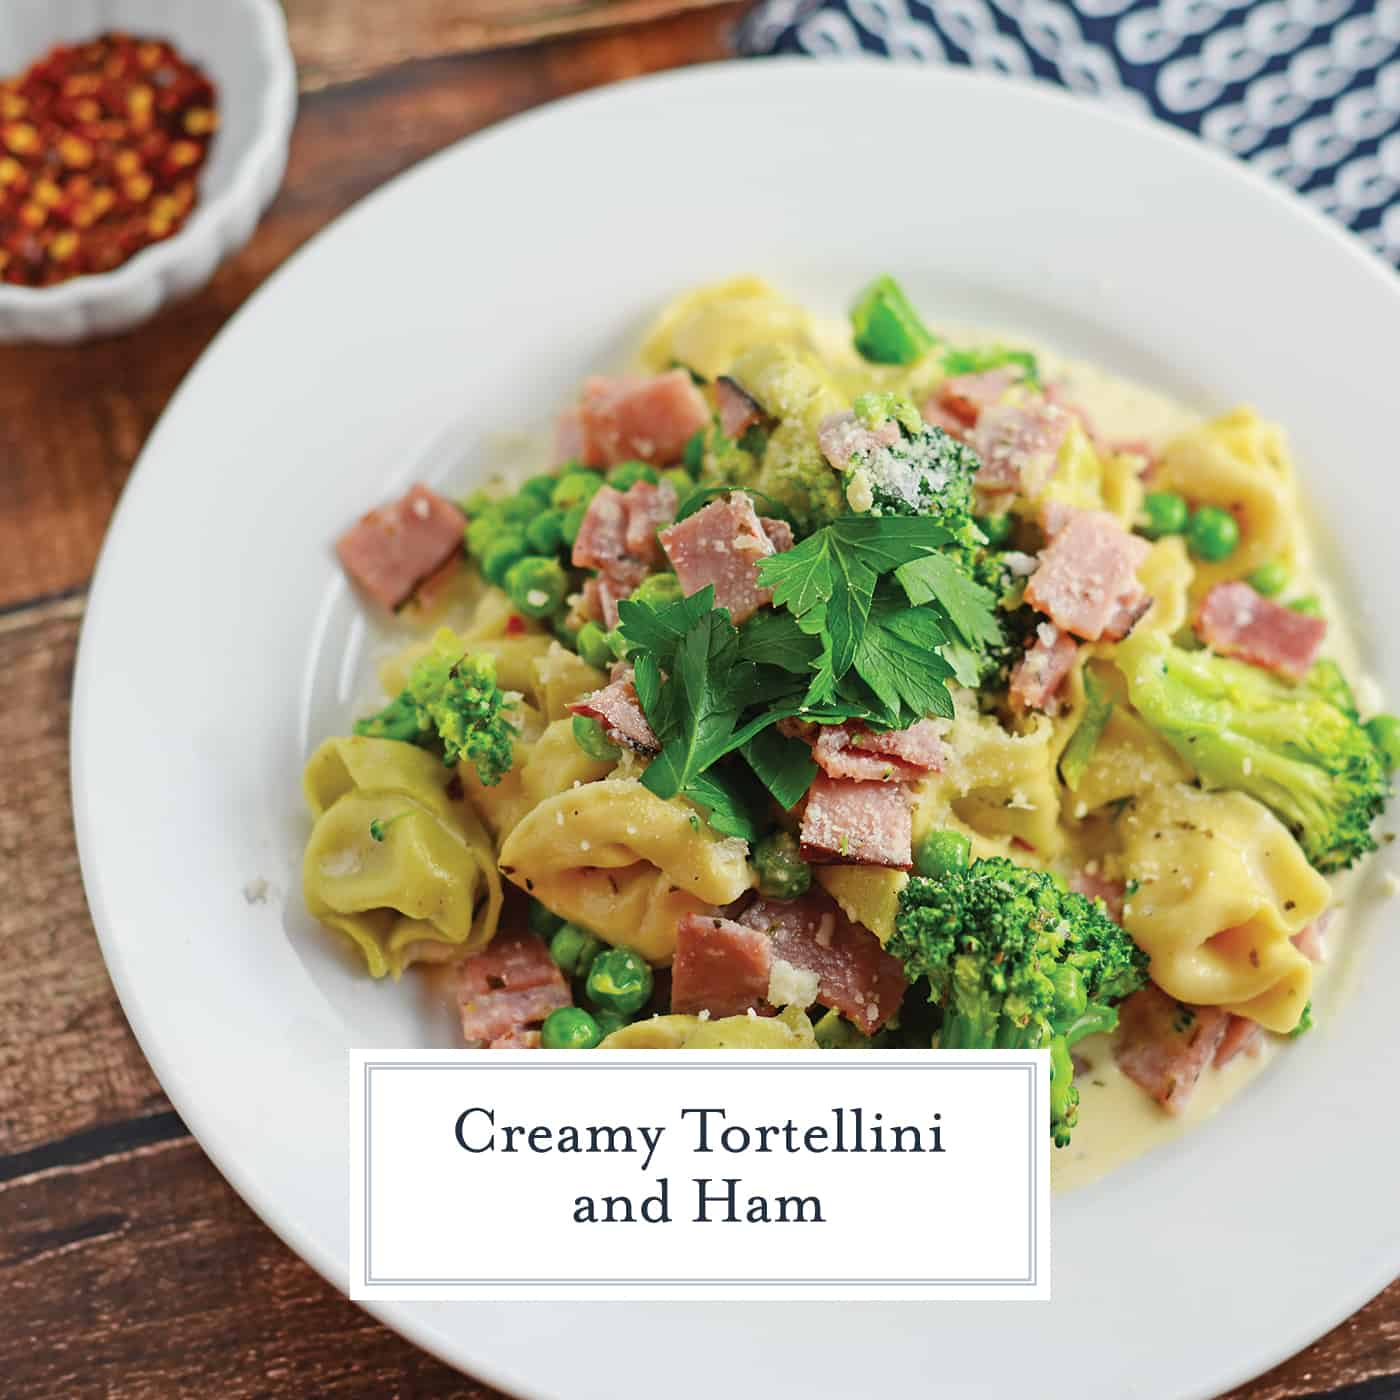 ham and cheese tortellini with broccoli